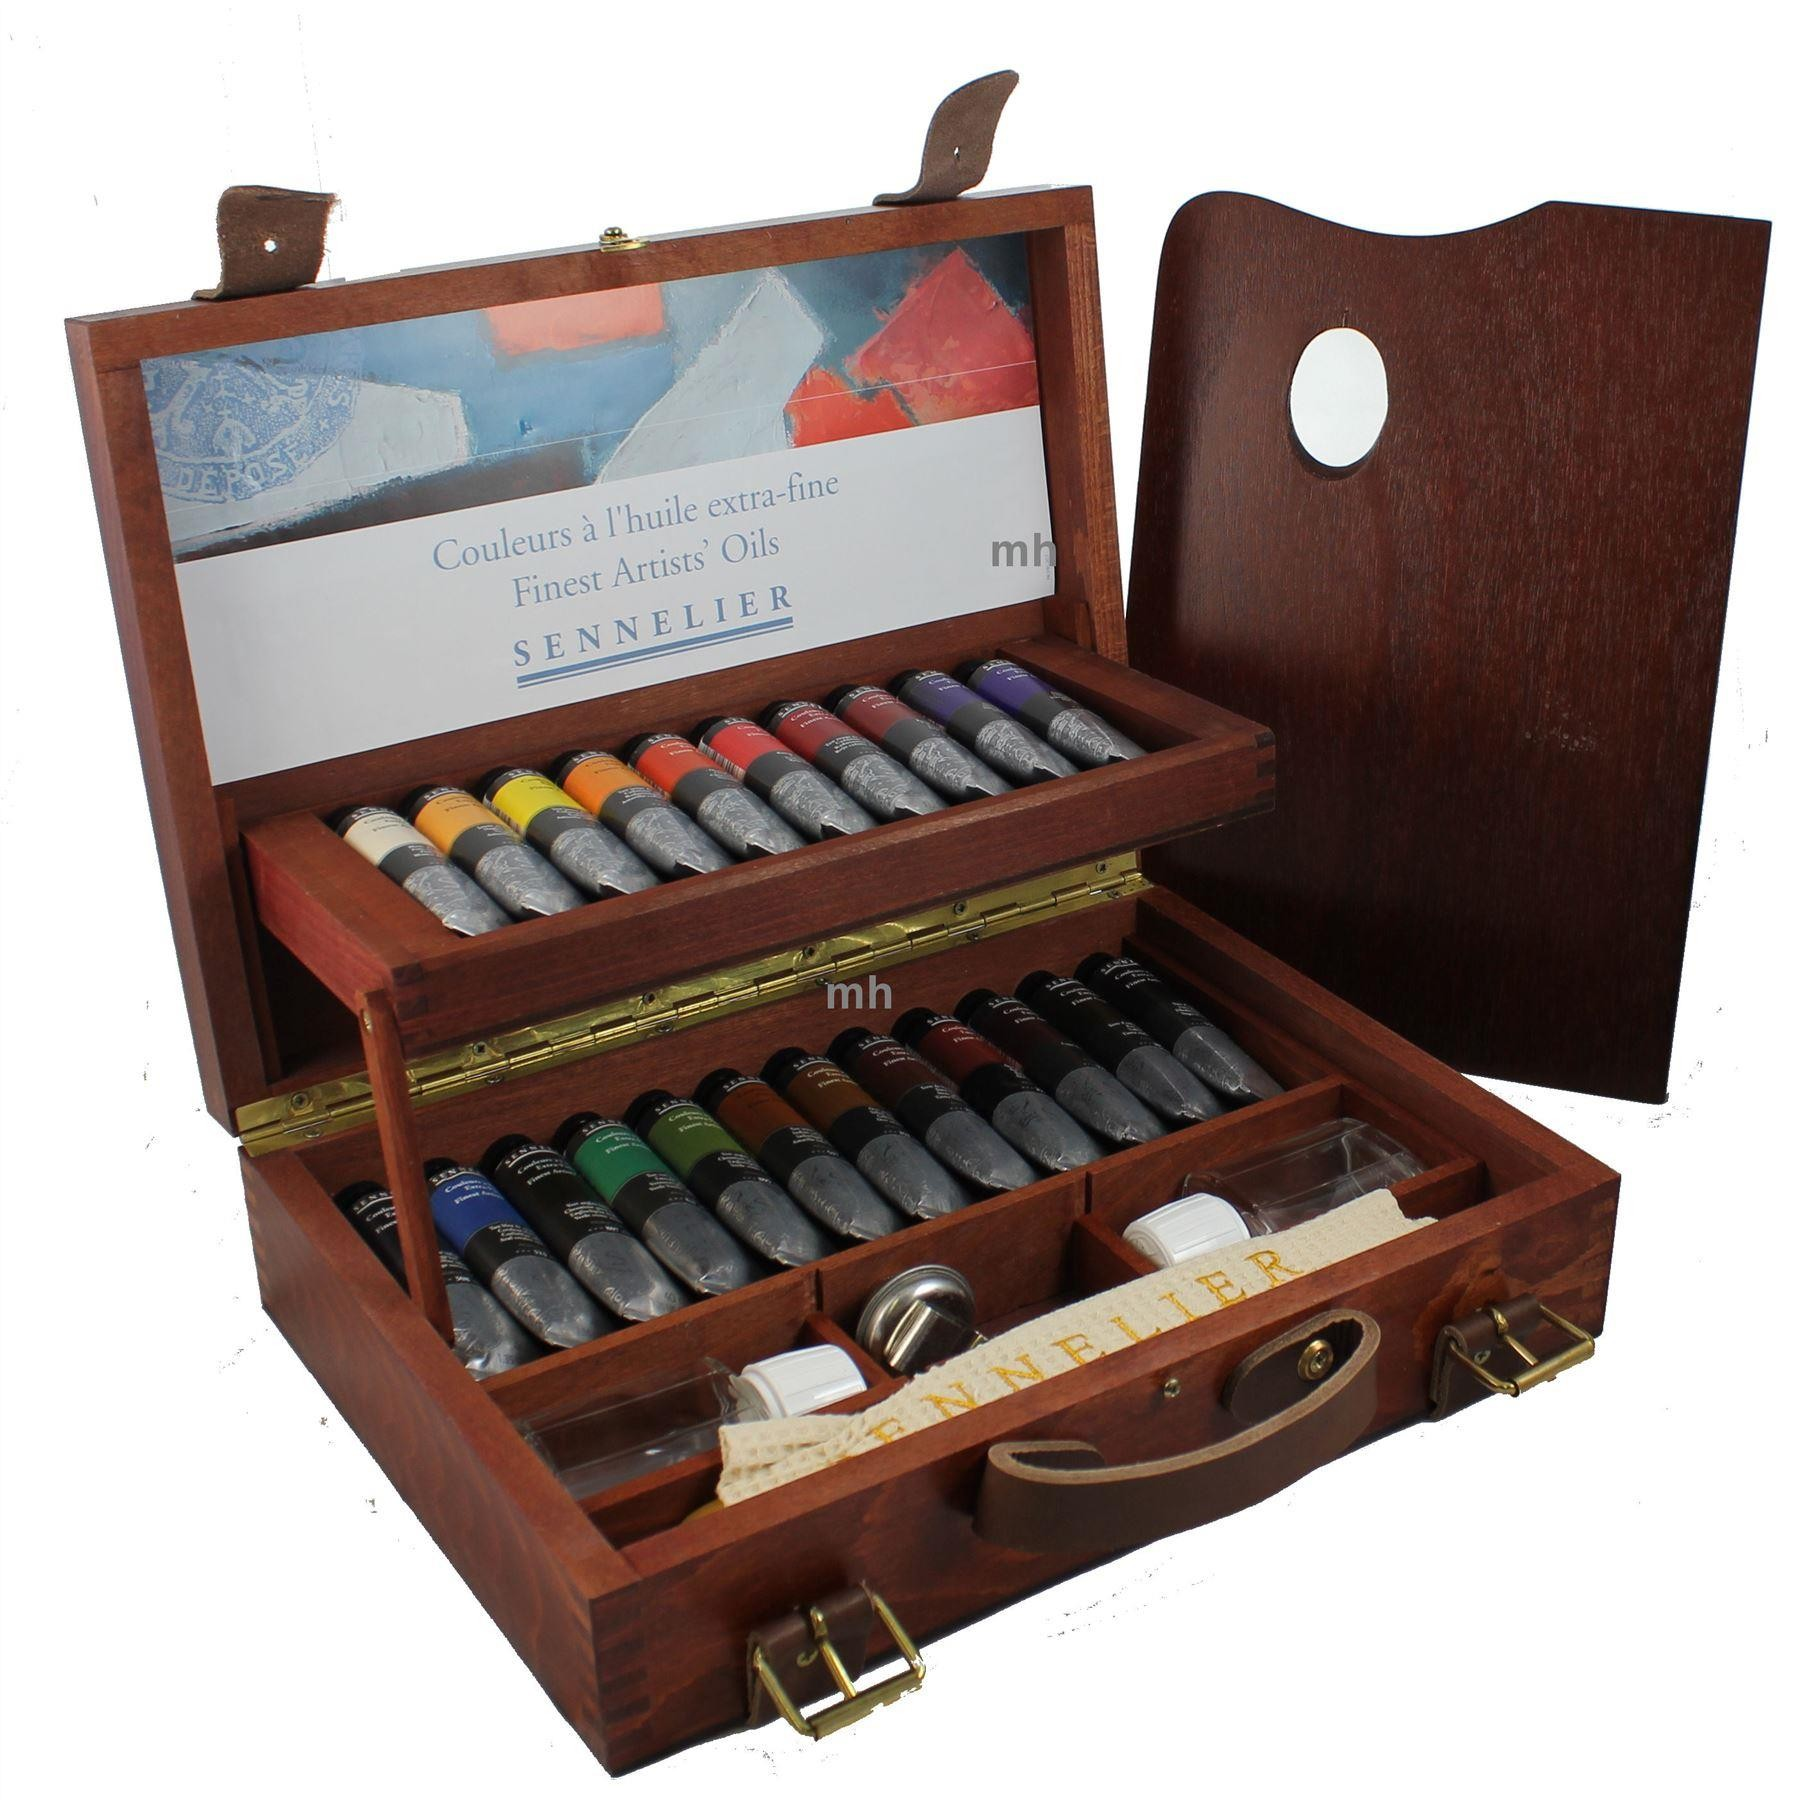 Sennelier 130351 artists oil wooden box set